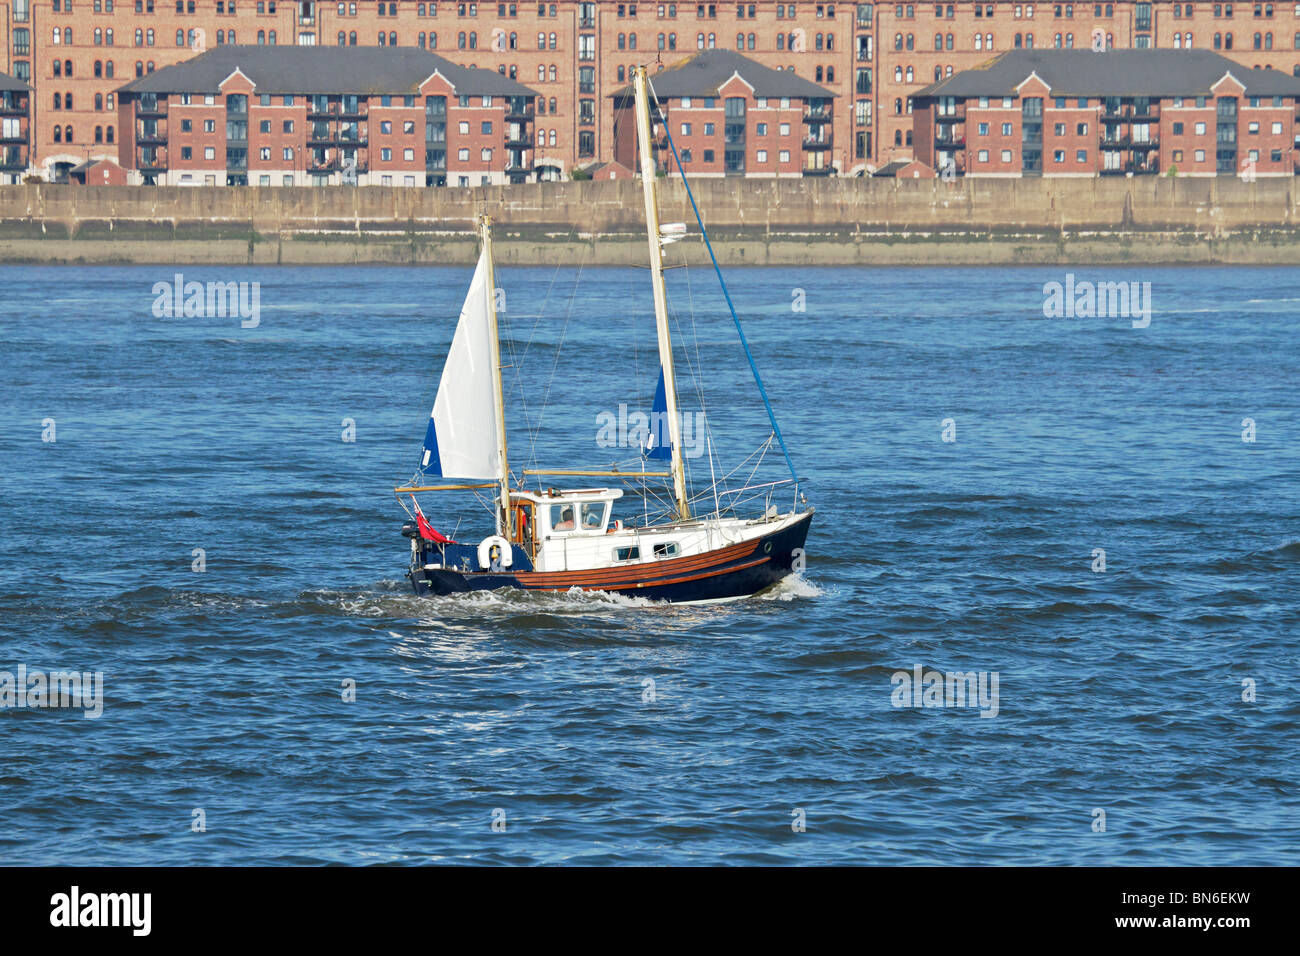 Small sailing boat heading up river Mersey on a bright sunny evening. - Stock Image